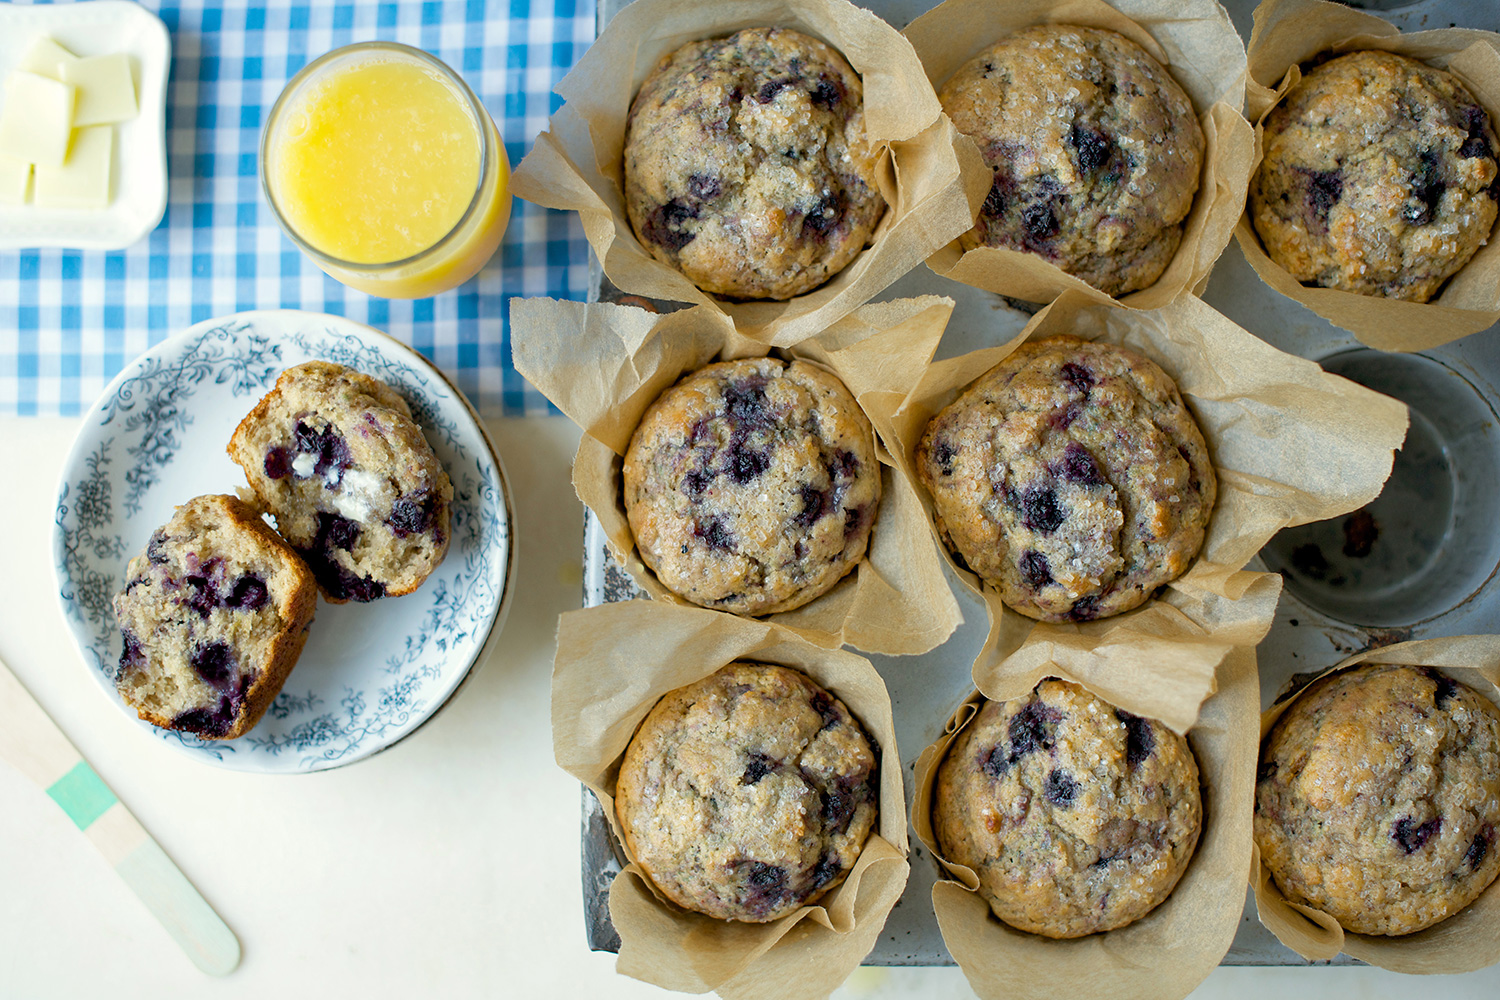 100-percent-whole-wheat--blueberry-muffins_0715.jpg